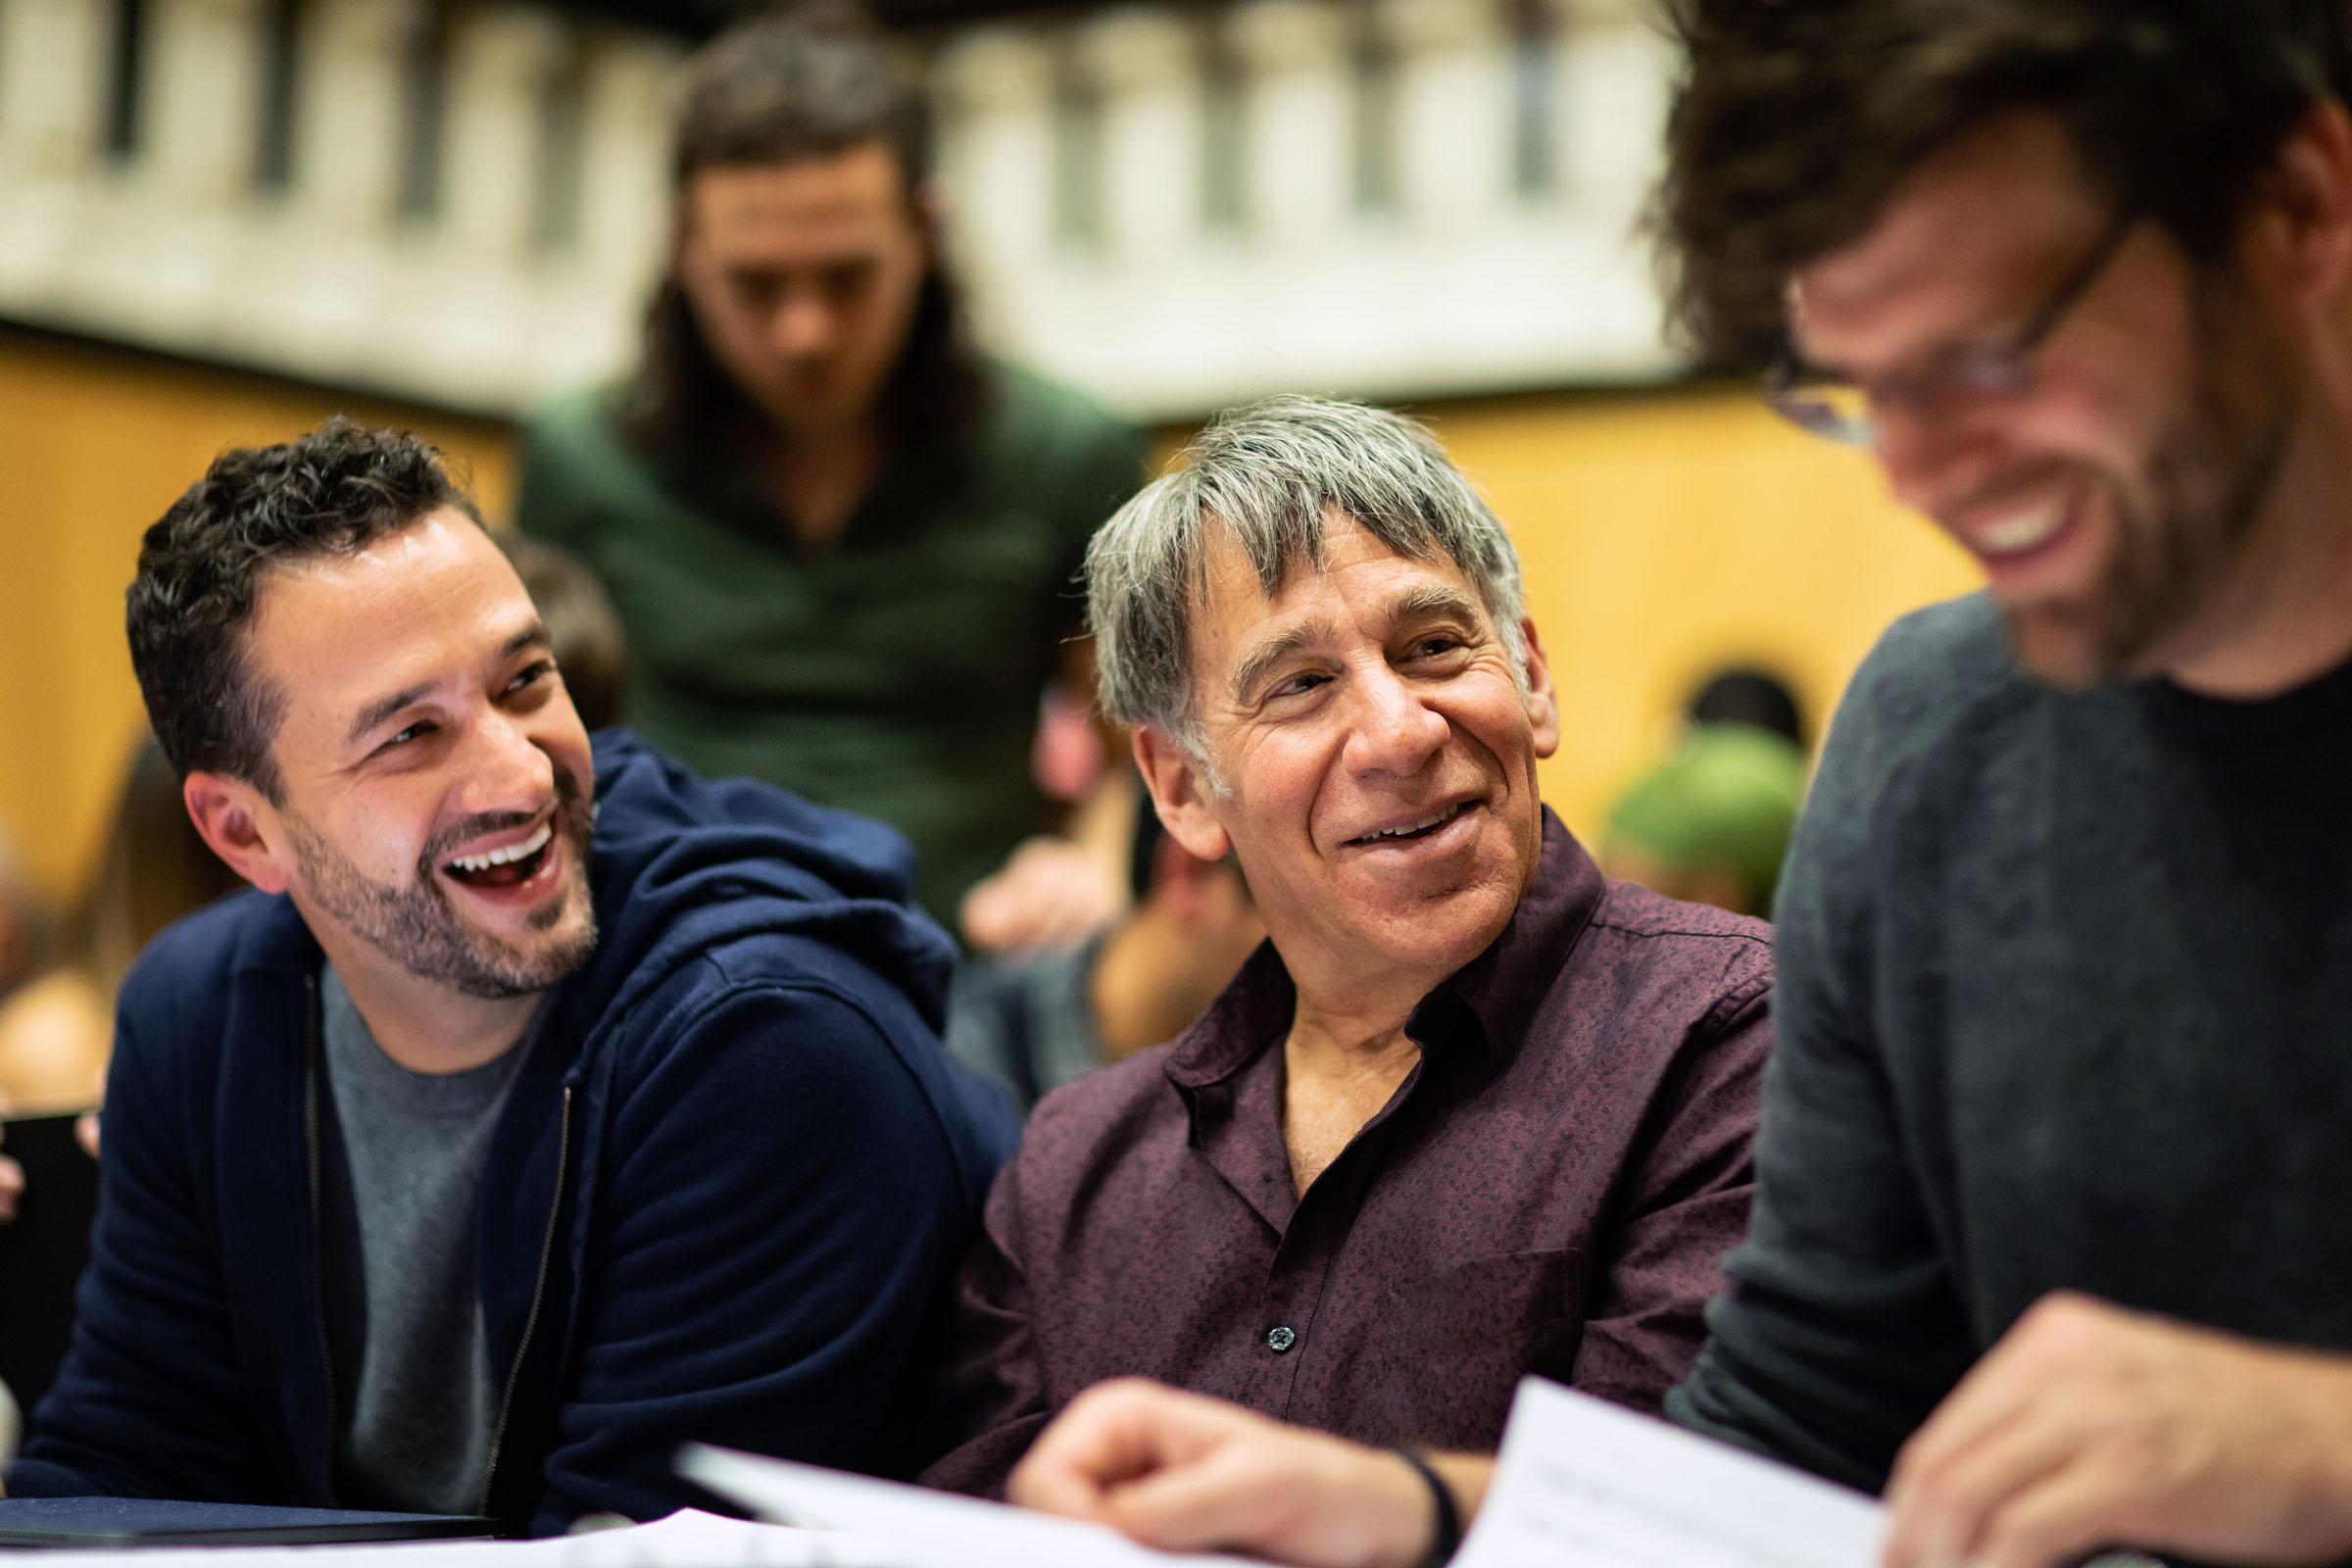 Dominick Amendum (Musical Supervision and Arrangements) and Stephen Schwartz (Music and Lyrics) during the Sitzprobe for The Prince of Egyp